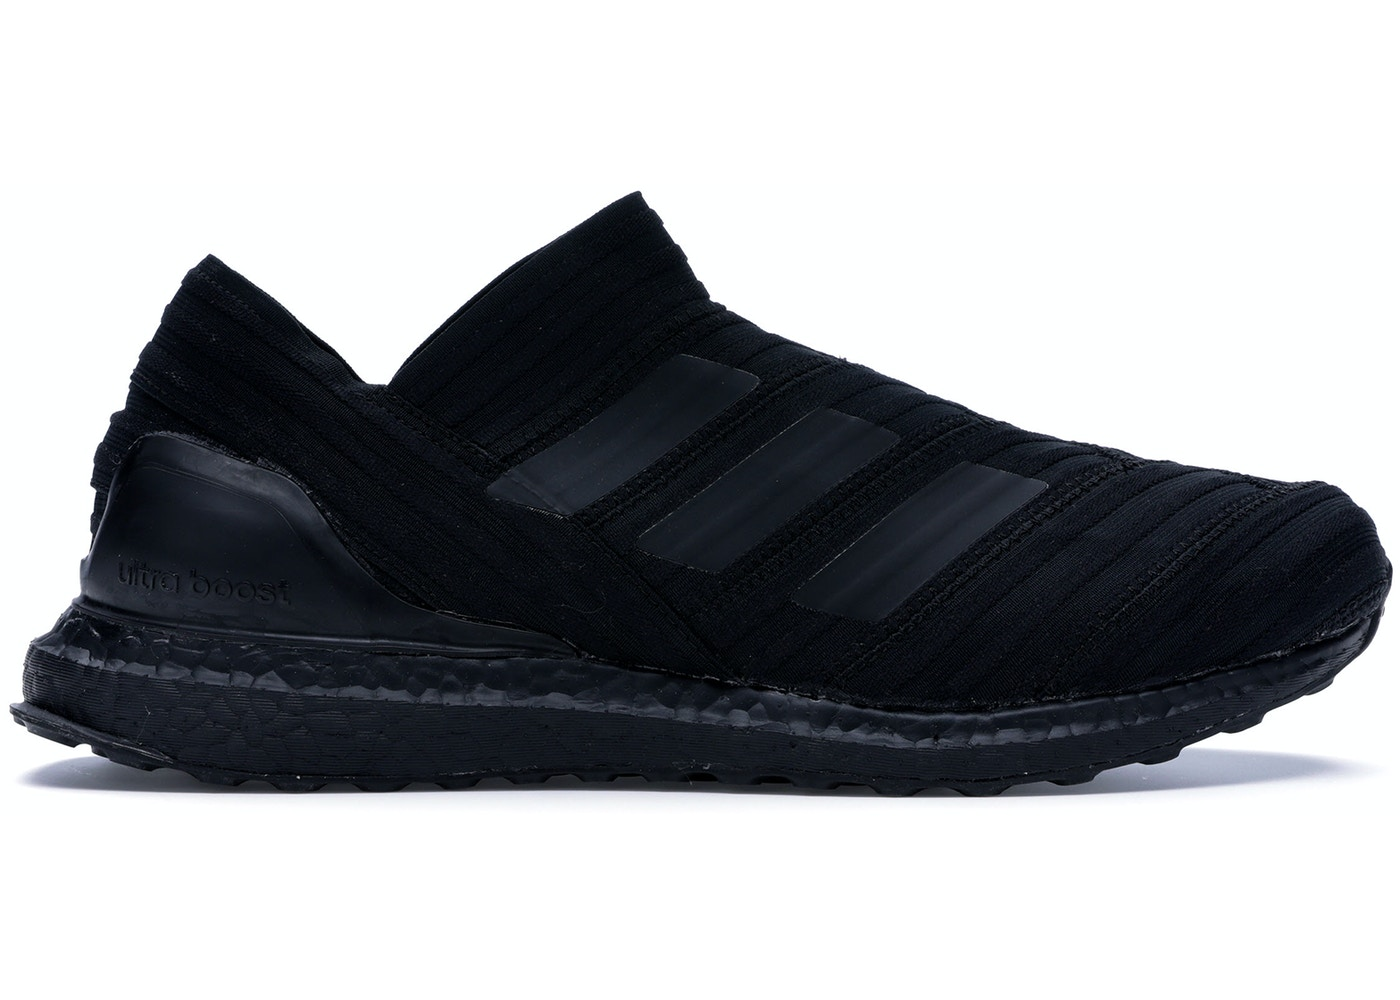 ab051e952d93c Buy adidas Ultra Boost Shoes   Deadstock Sneakers